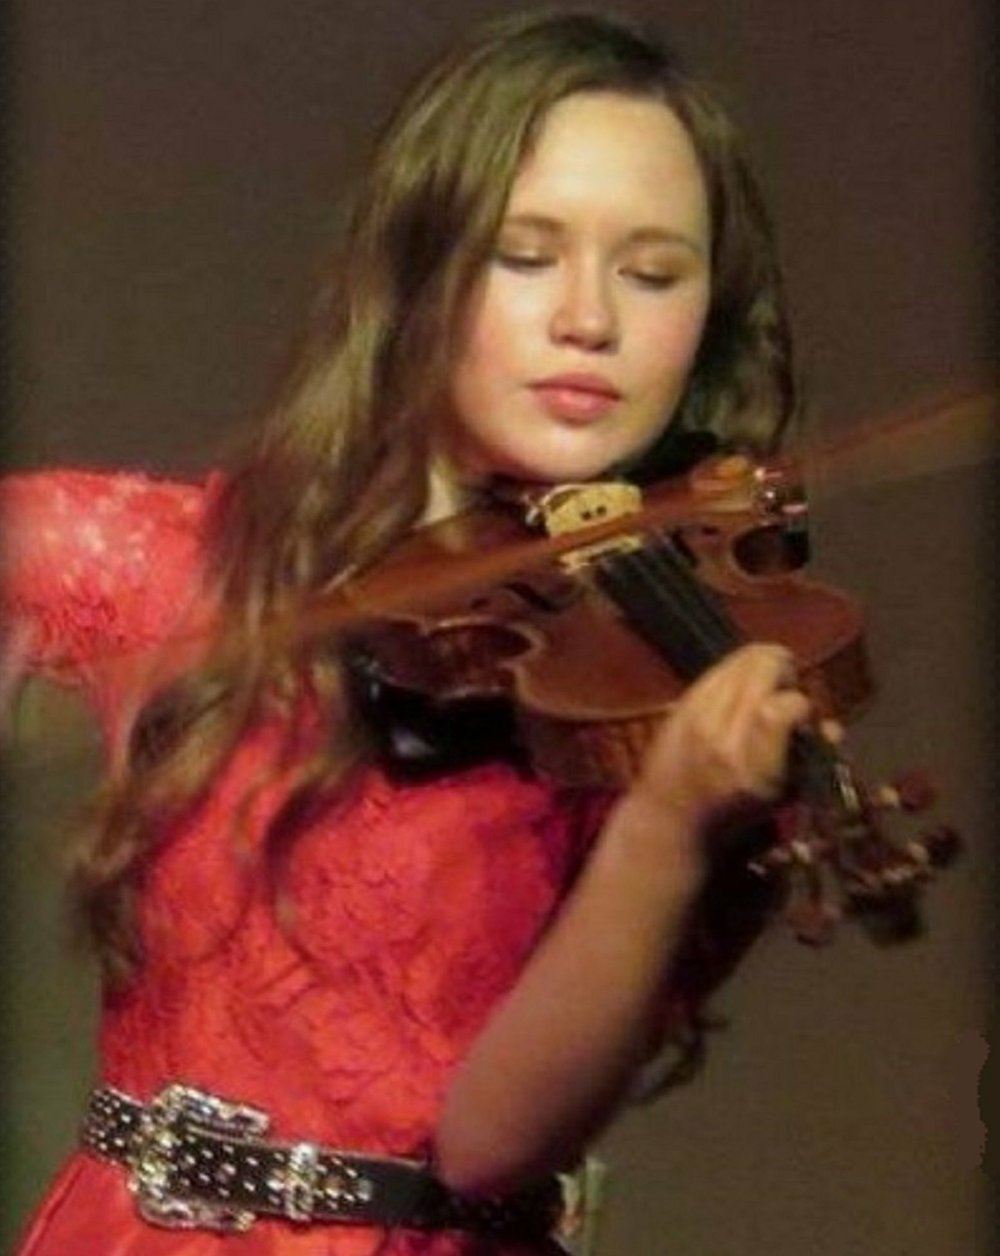 Fiddler/singer Tori Vourganas is among the featured performers for the Boomtown Opry Saturday in El Dorado.